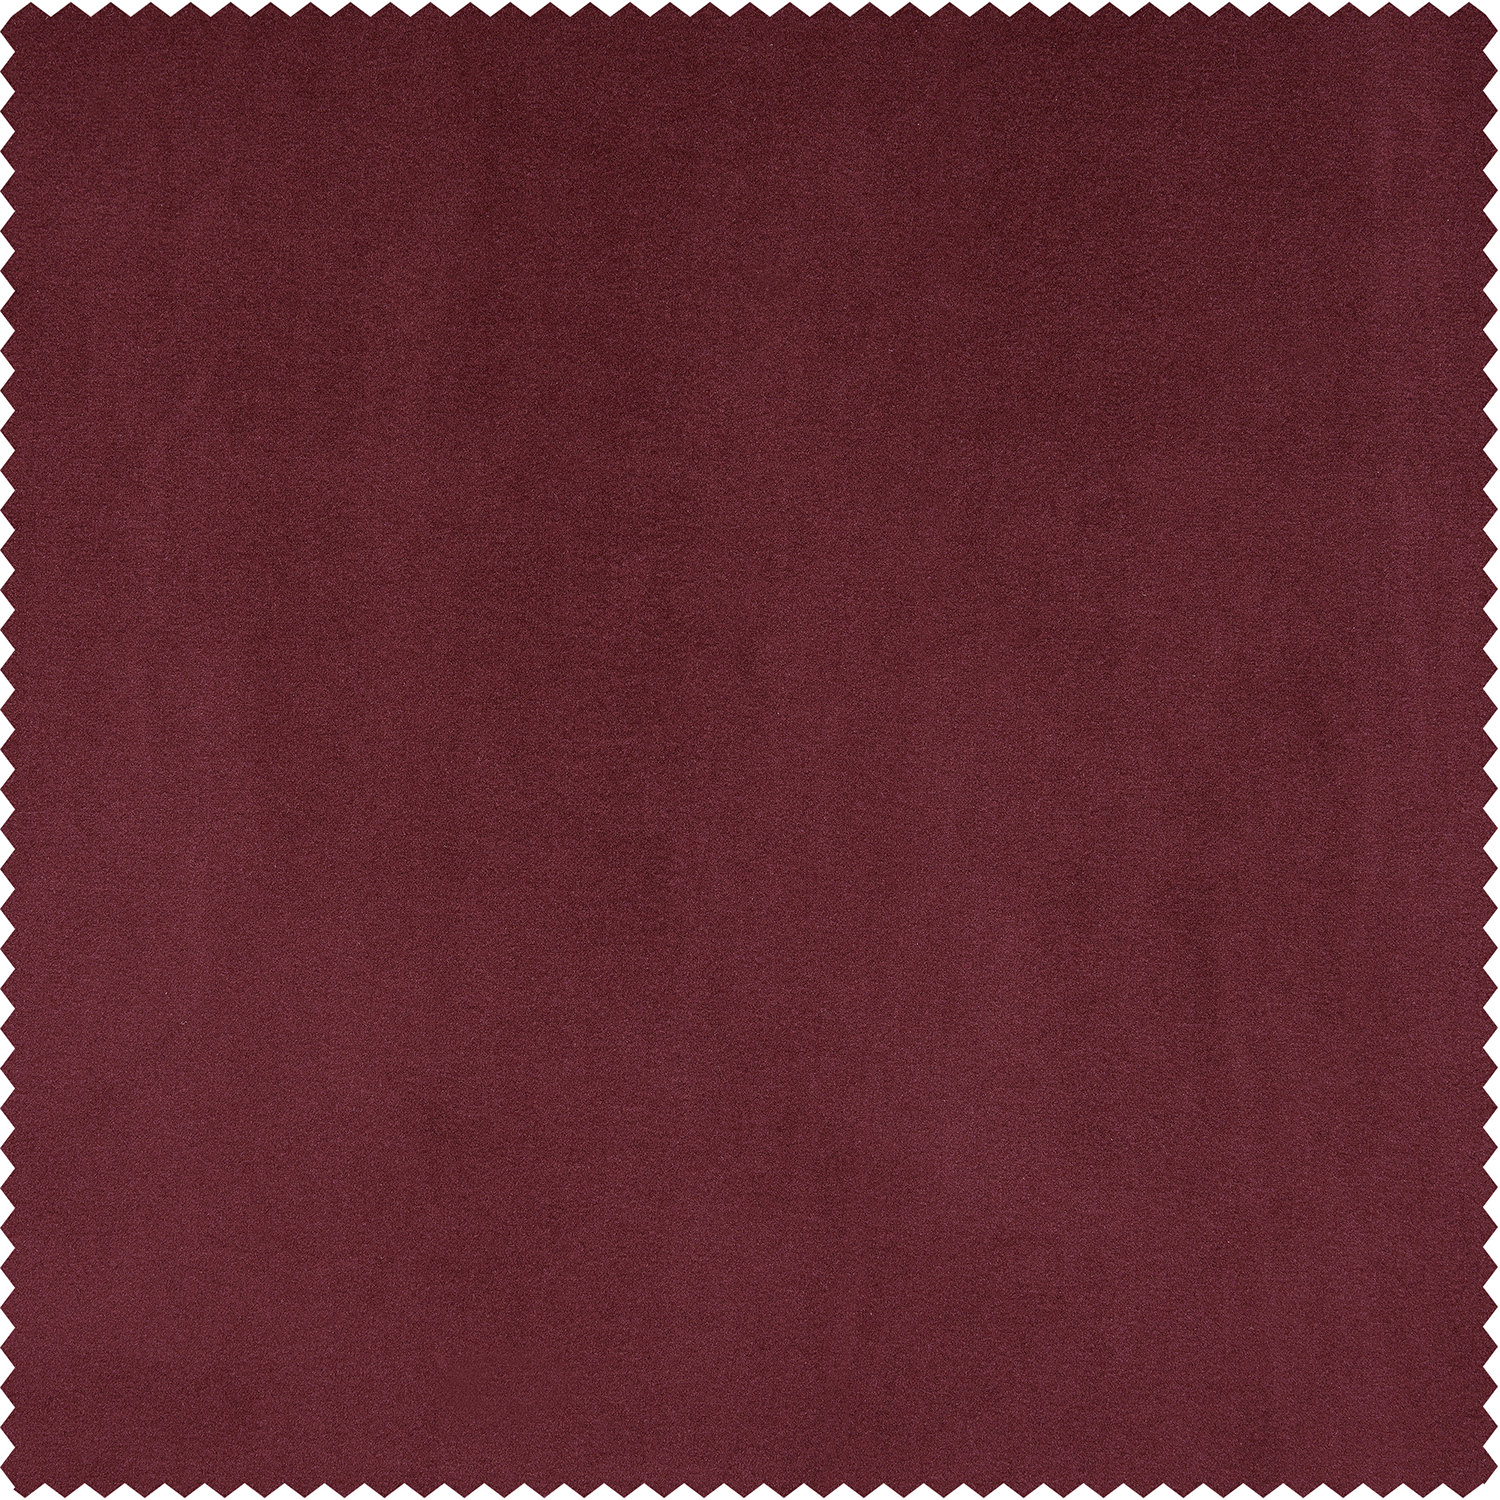 Cinema Red Heritage Plush Velvet Swatch